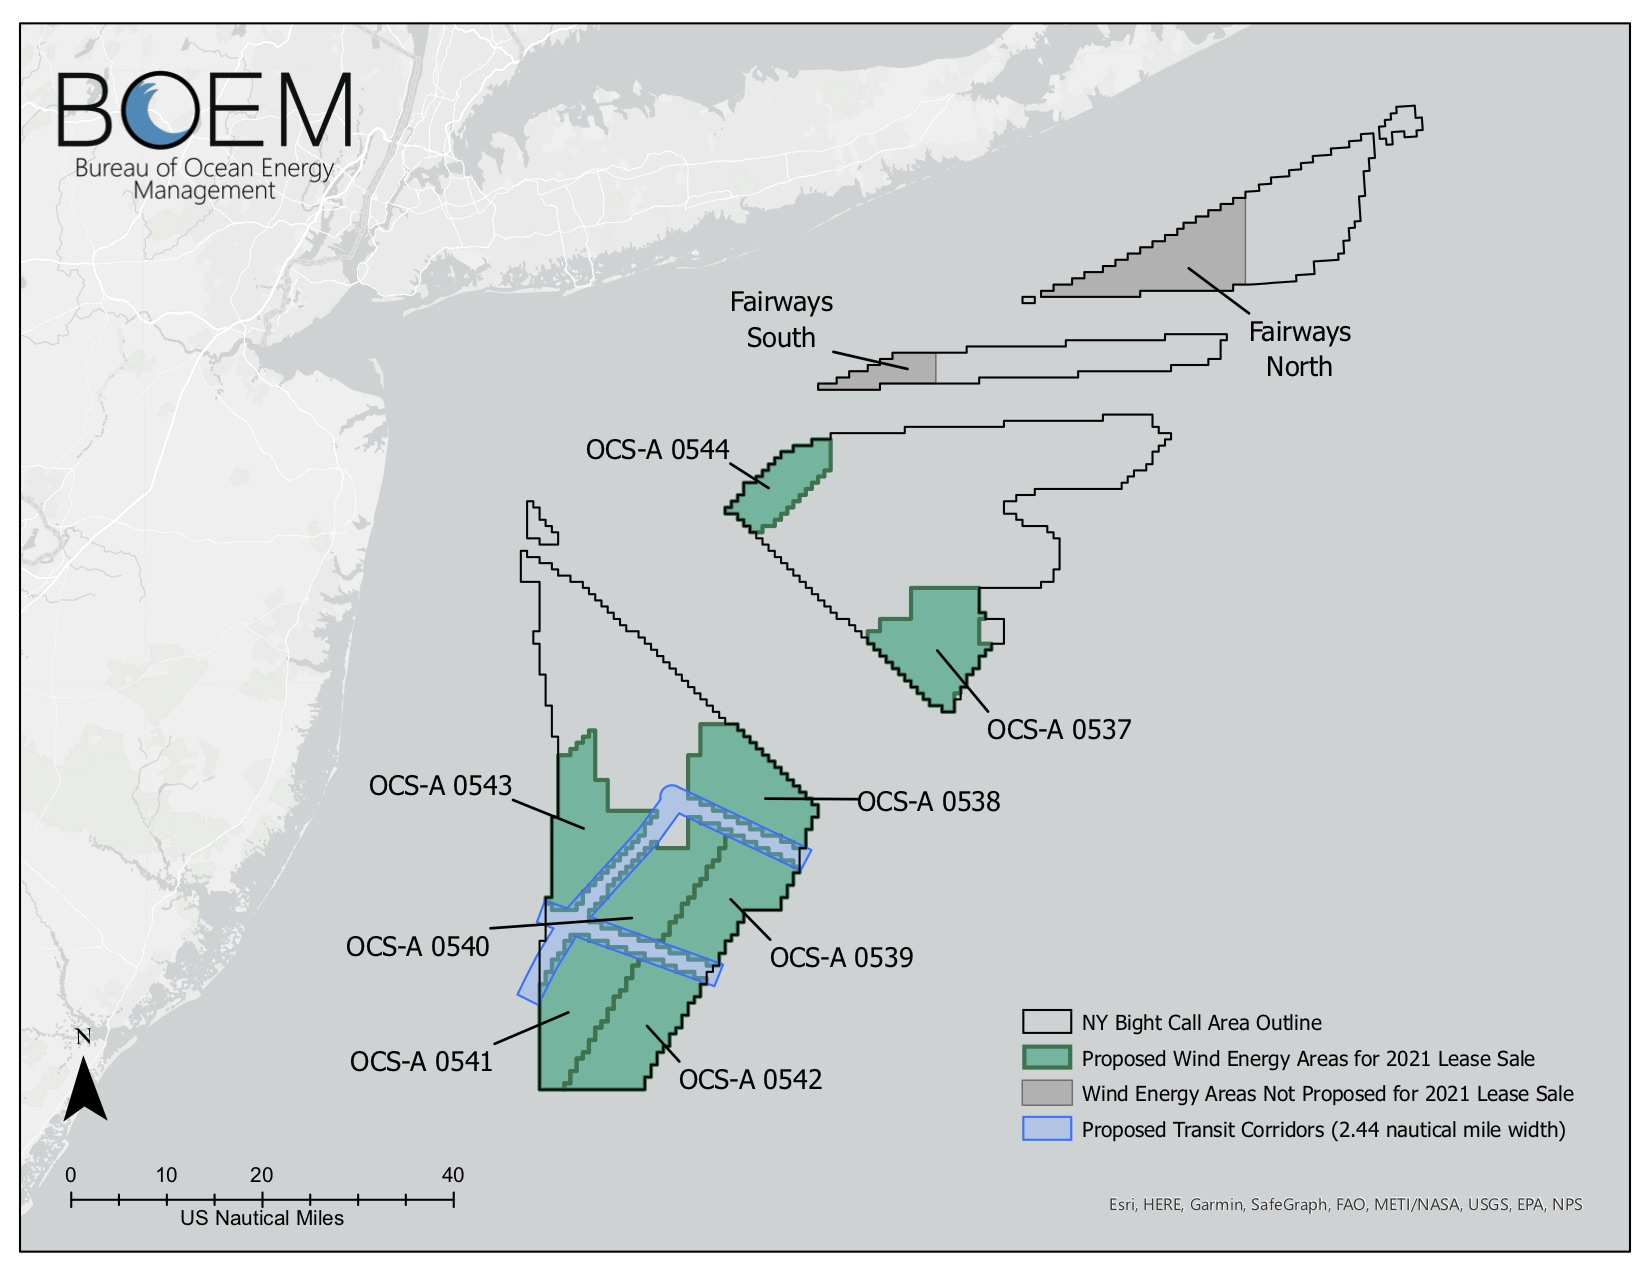 A map that shows the new offshore wind lease areas in the New York bight